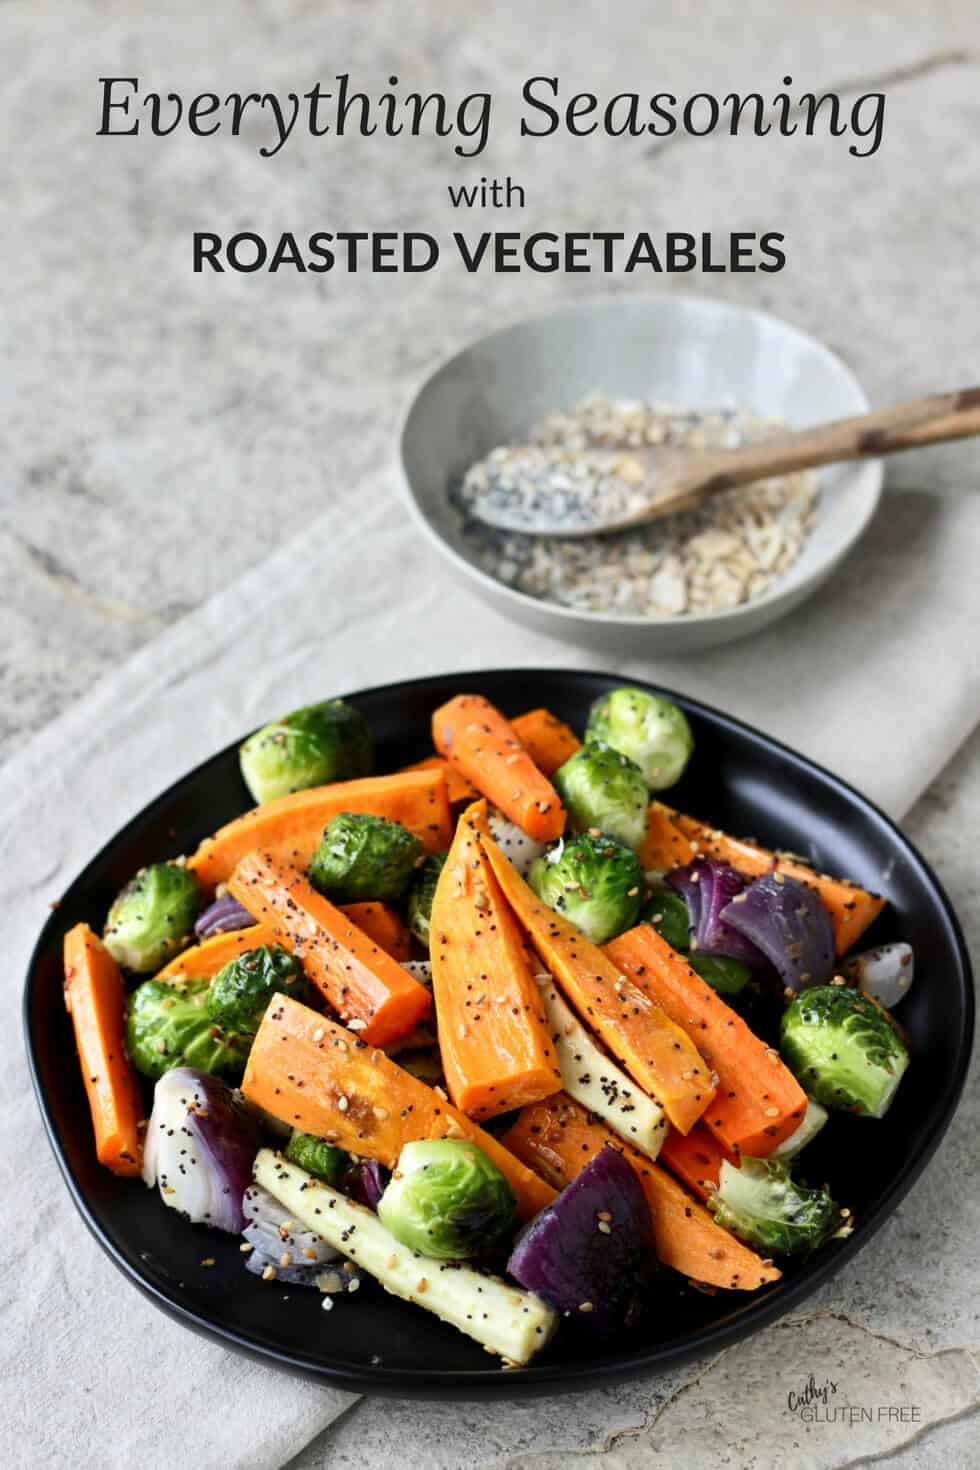 Everything Seasoning is great on roasted vegetables! #glutenfree #grainfree #paleo